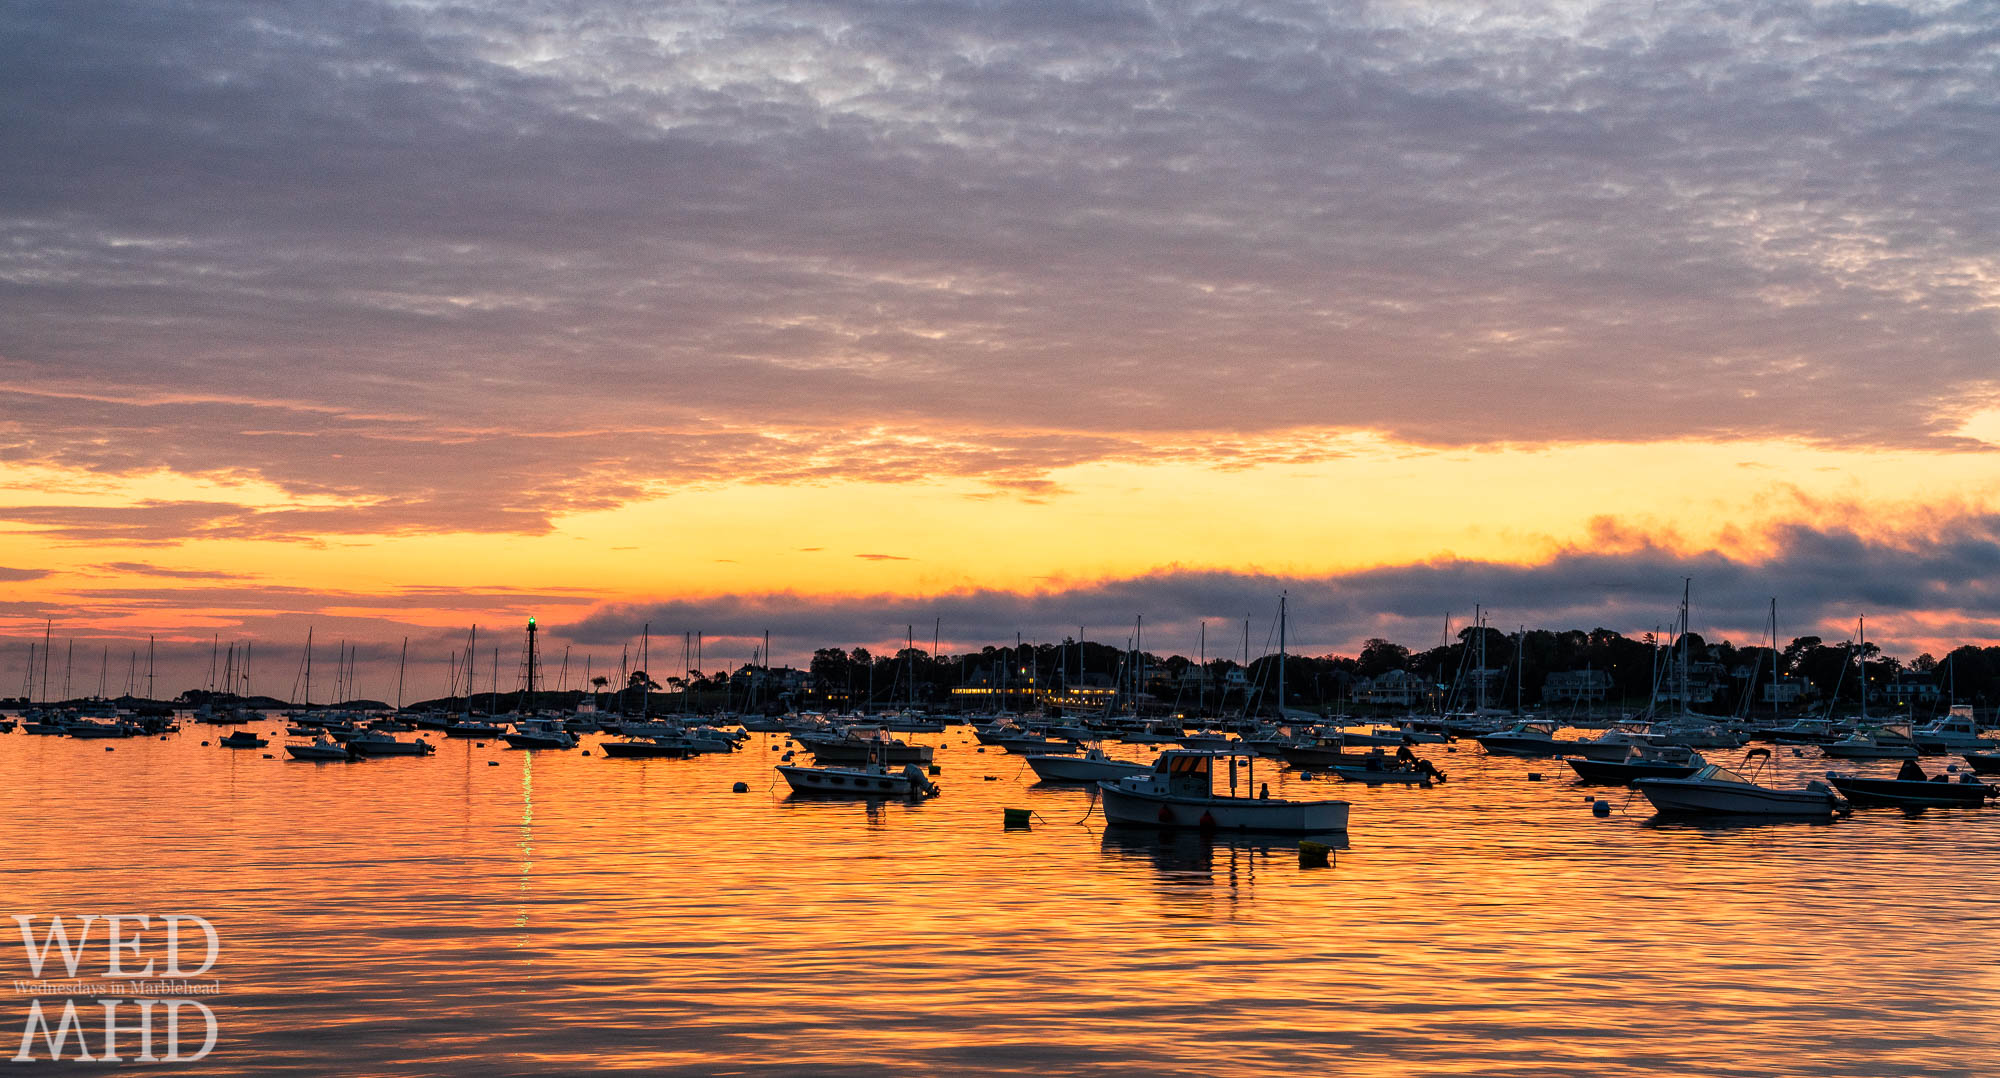 Dawn's early light set Marblehead harbor aglow thirty minutes before the sunrise on an early October morning